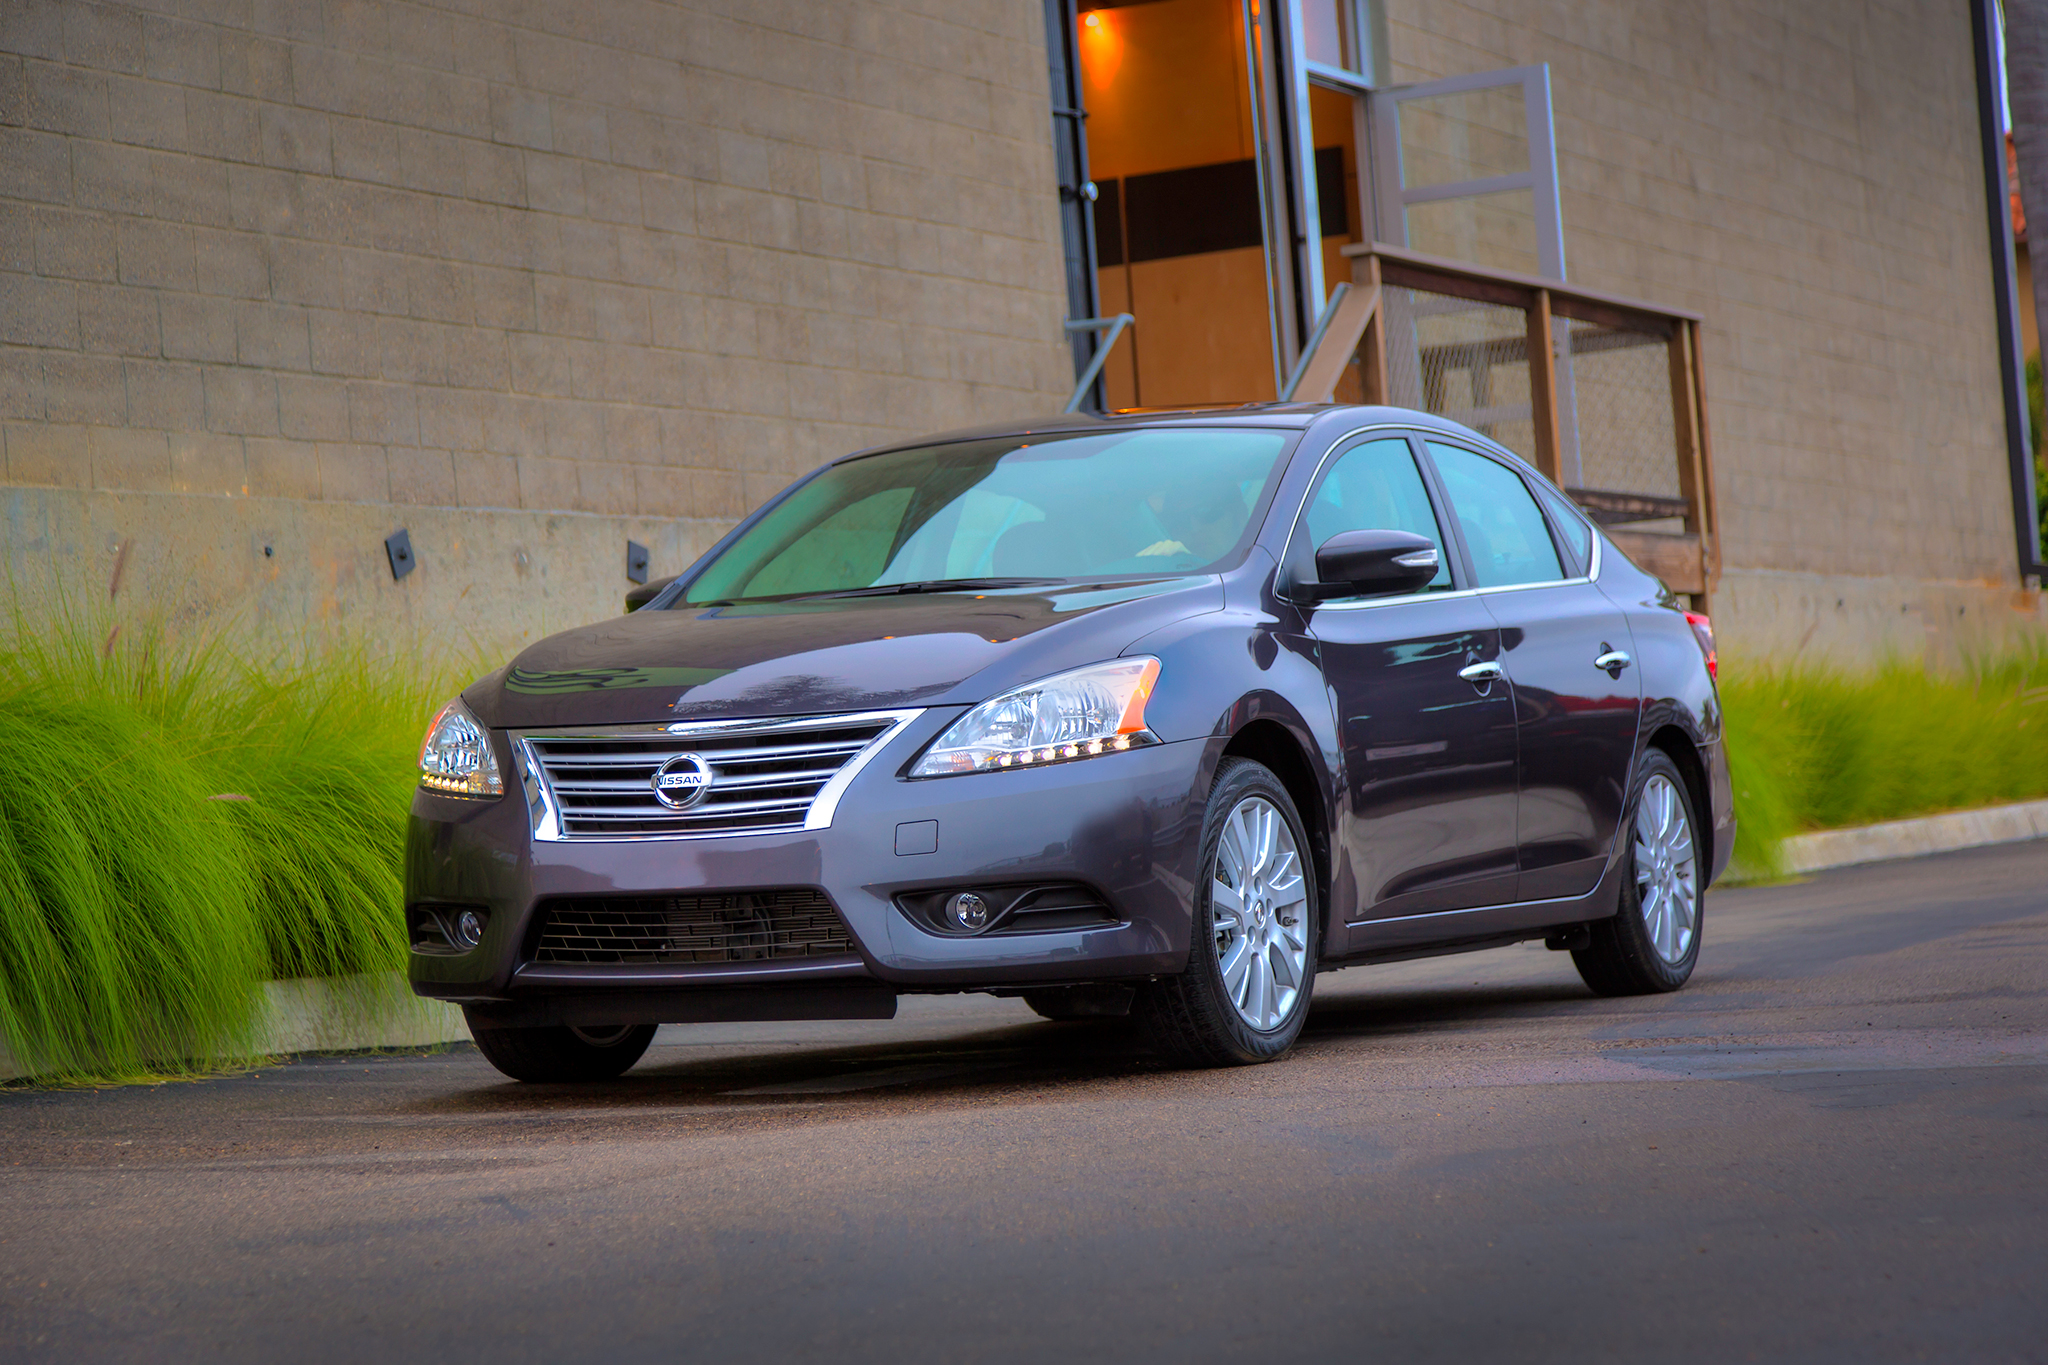 2015 Nissan Sentra Price Increases As Some Equipment Is Made Standard